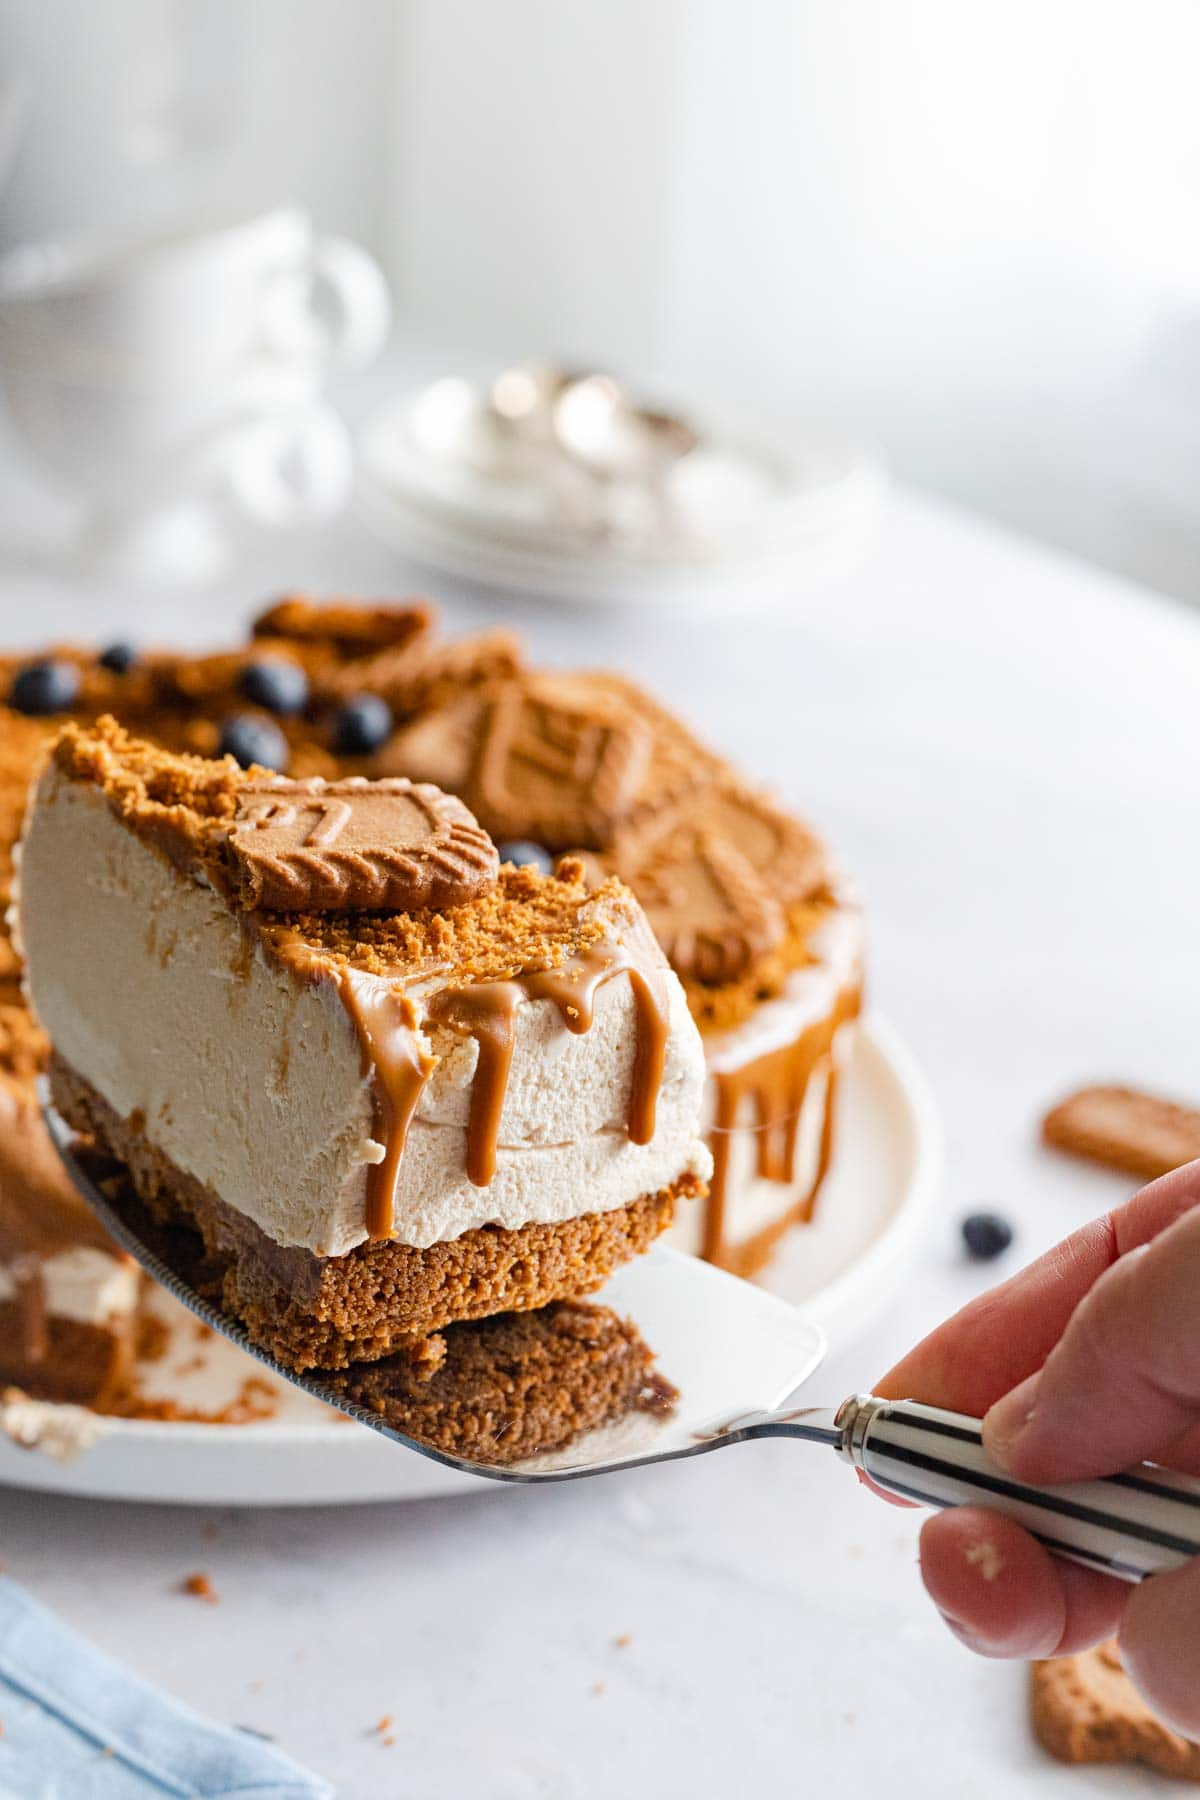 A slice of biscoff cheesecake being held up by a hand